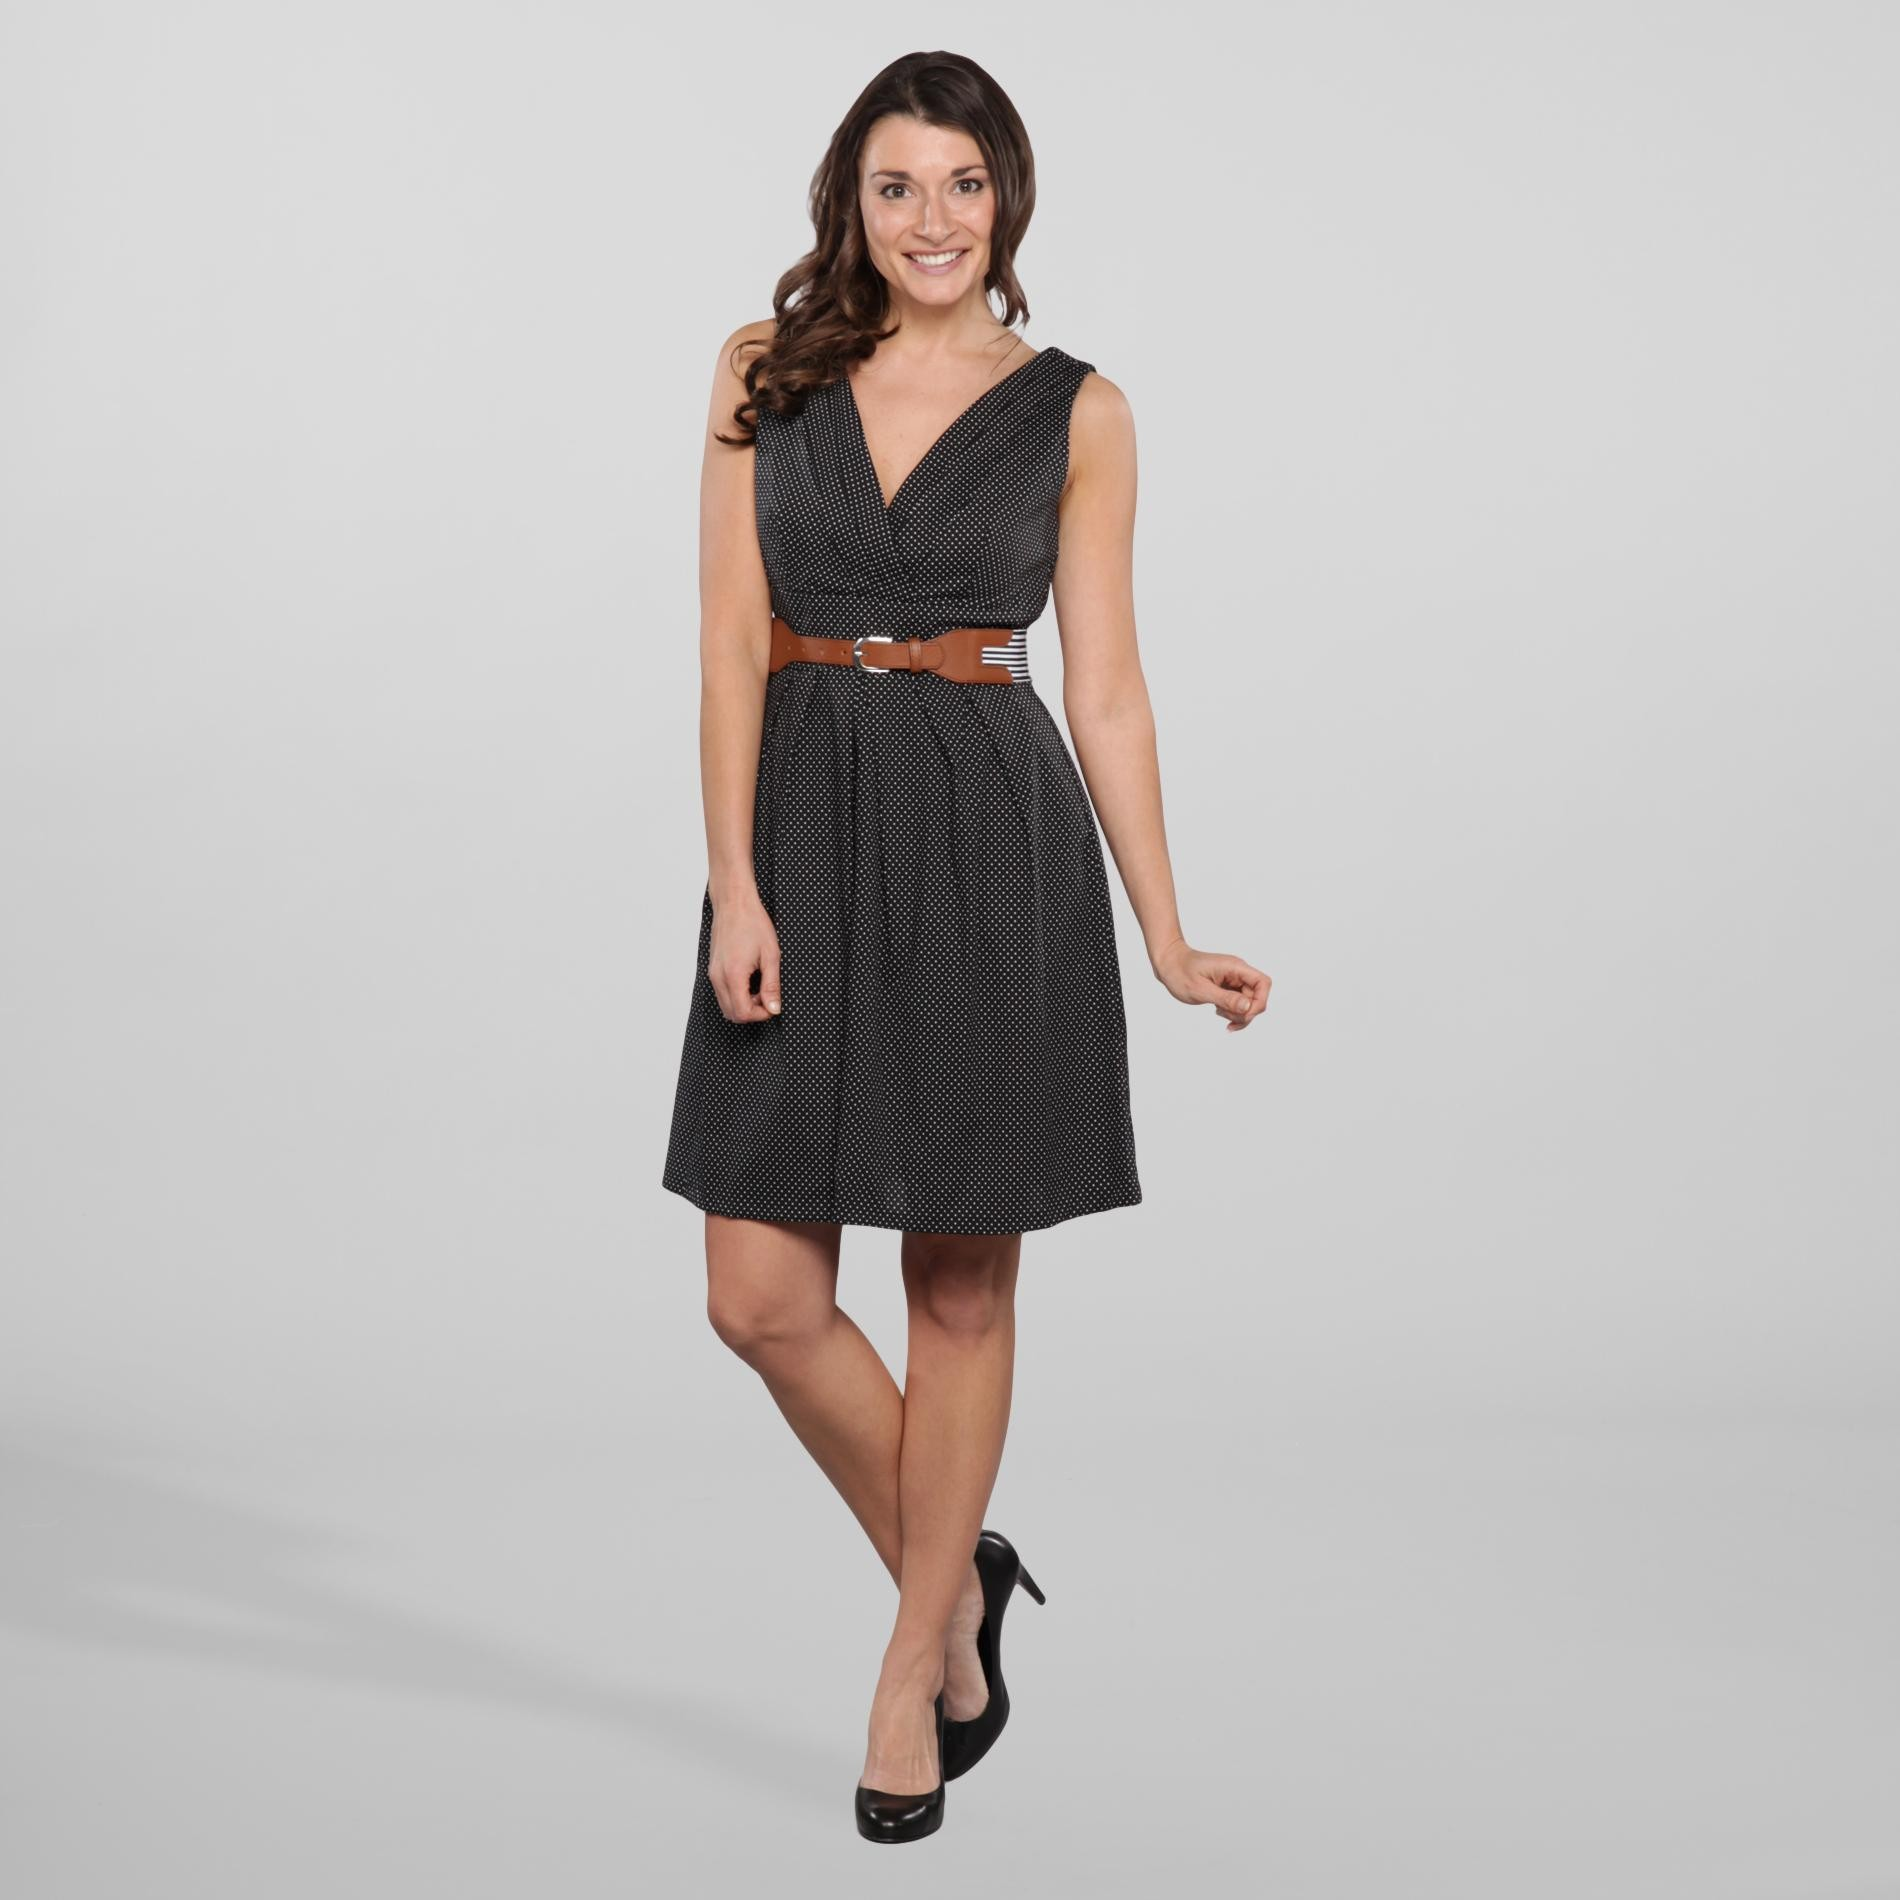 Women's Belted Dress at Kmart.com